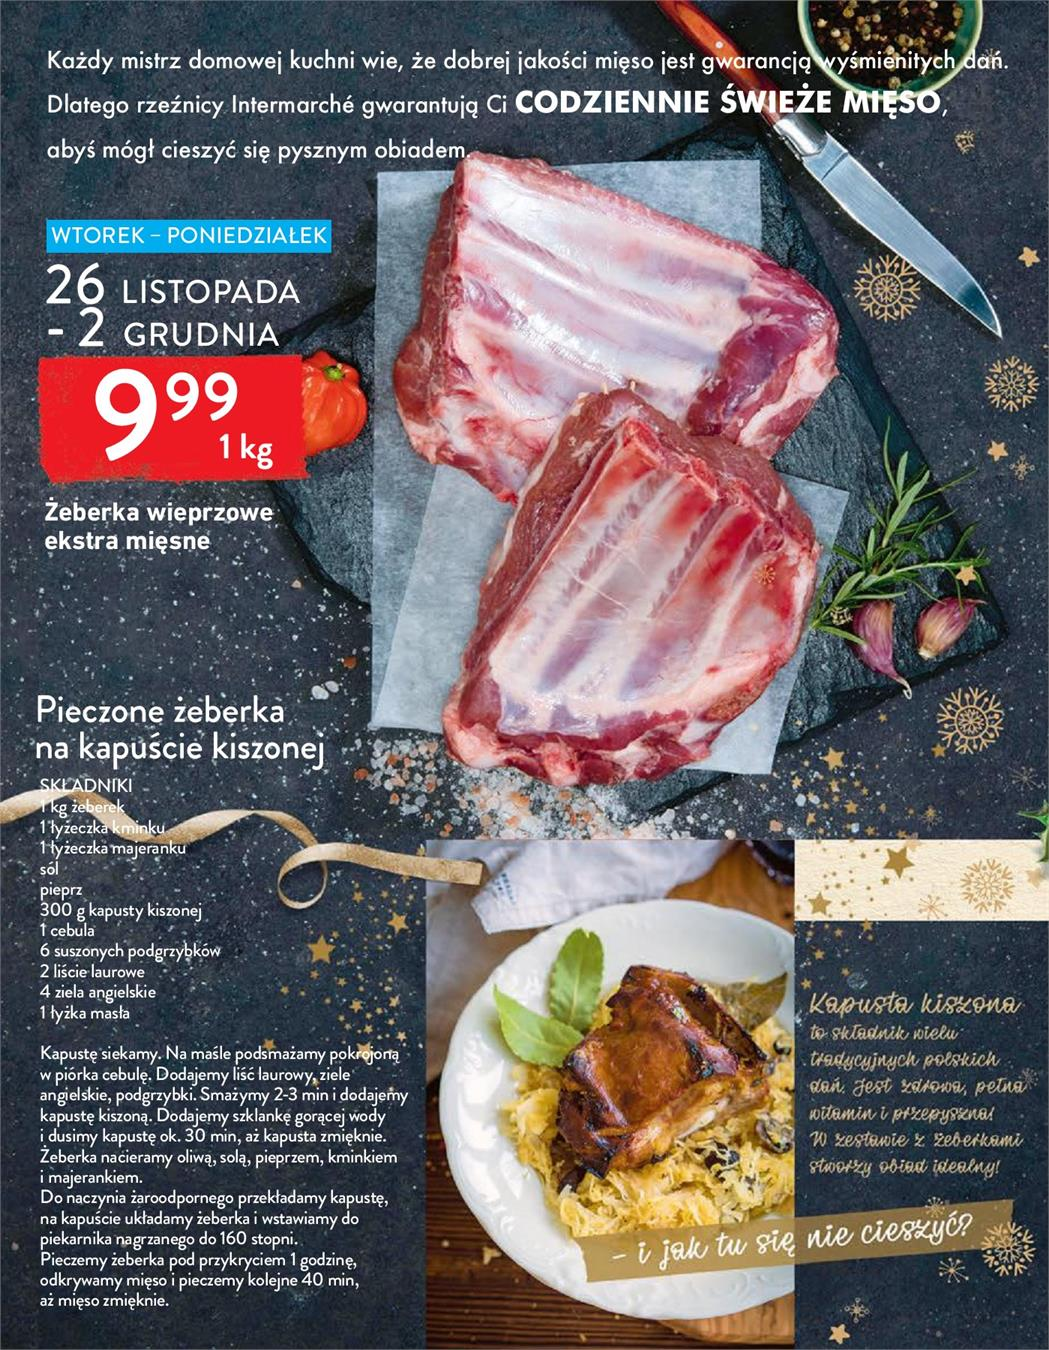 Gazetka SCA PR Polska Sp. z o.o. nr 8 od 2019-11-26 do 2019-12-02